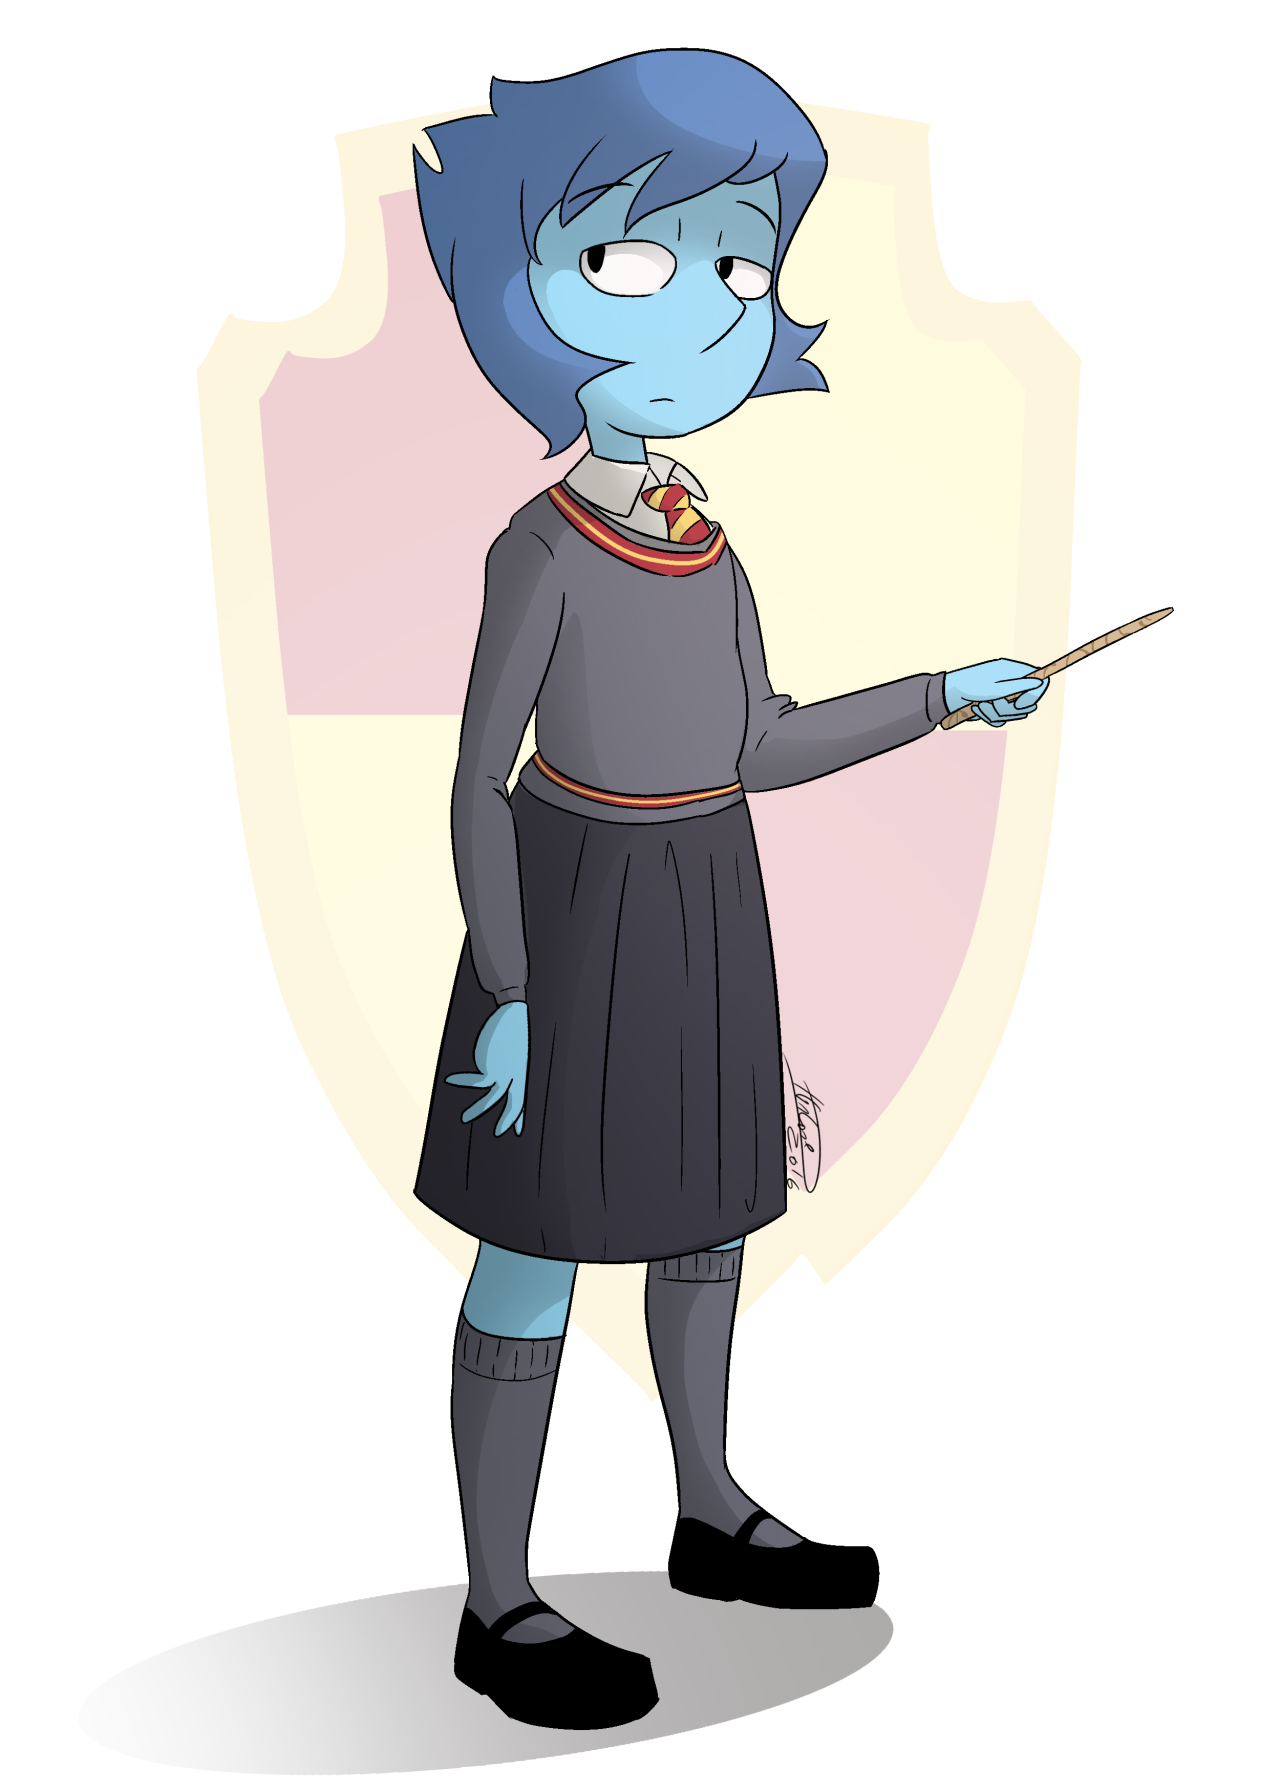 Lapis/Hermione,Hogwarts AU thanks to @bigwolfchef who give me the idea ;3 I was going to do some doodle but Lapis inspired me x3